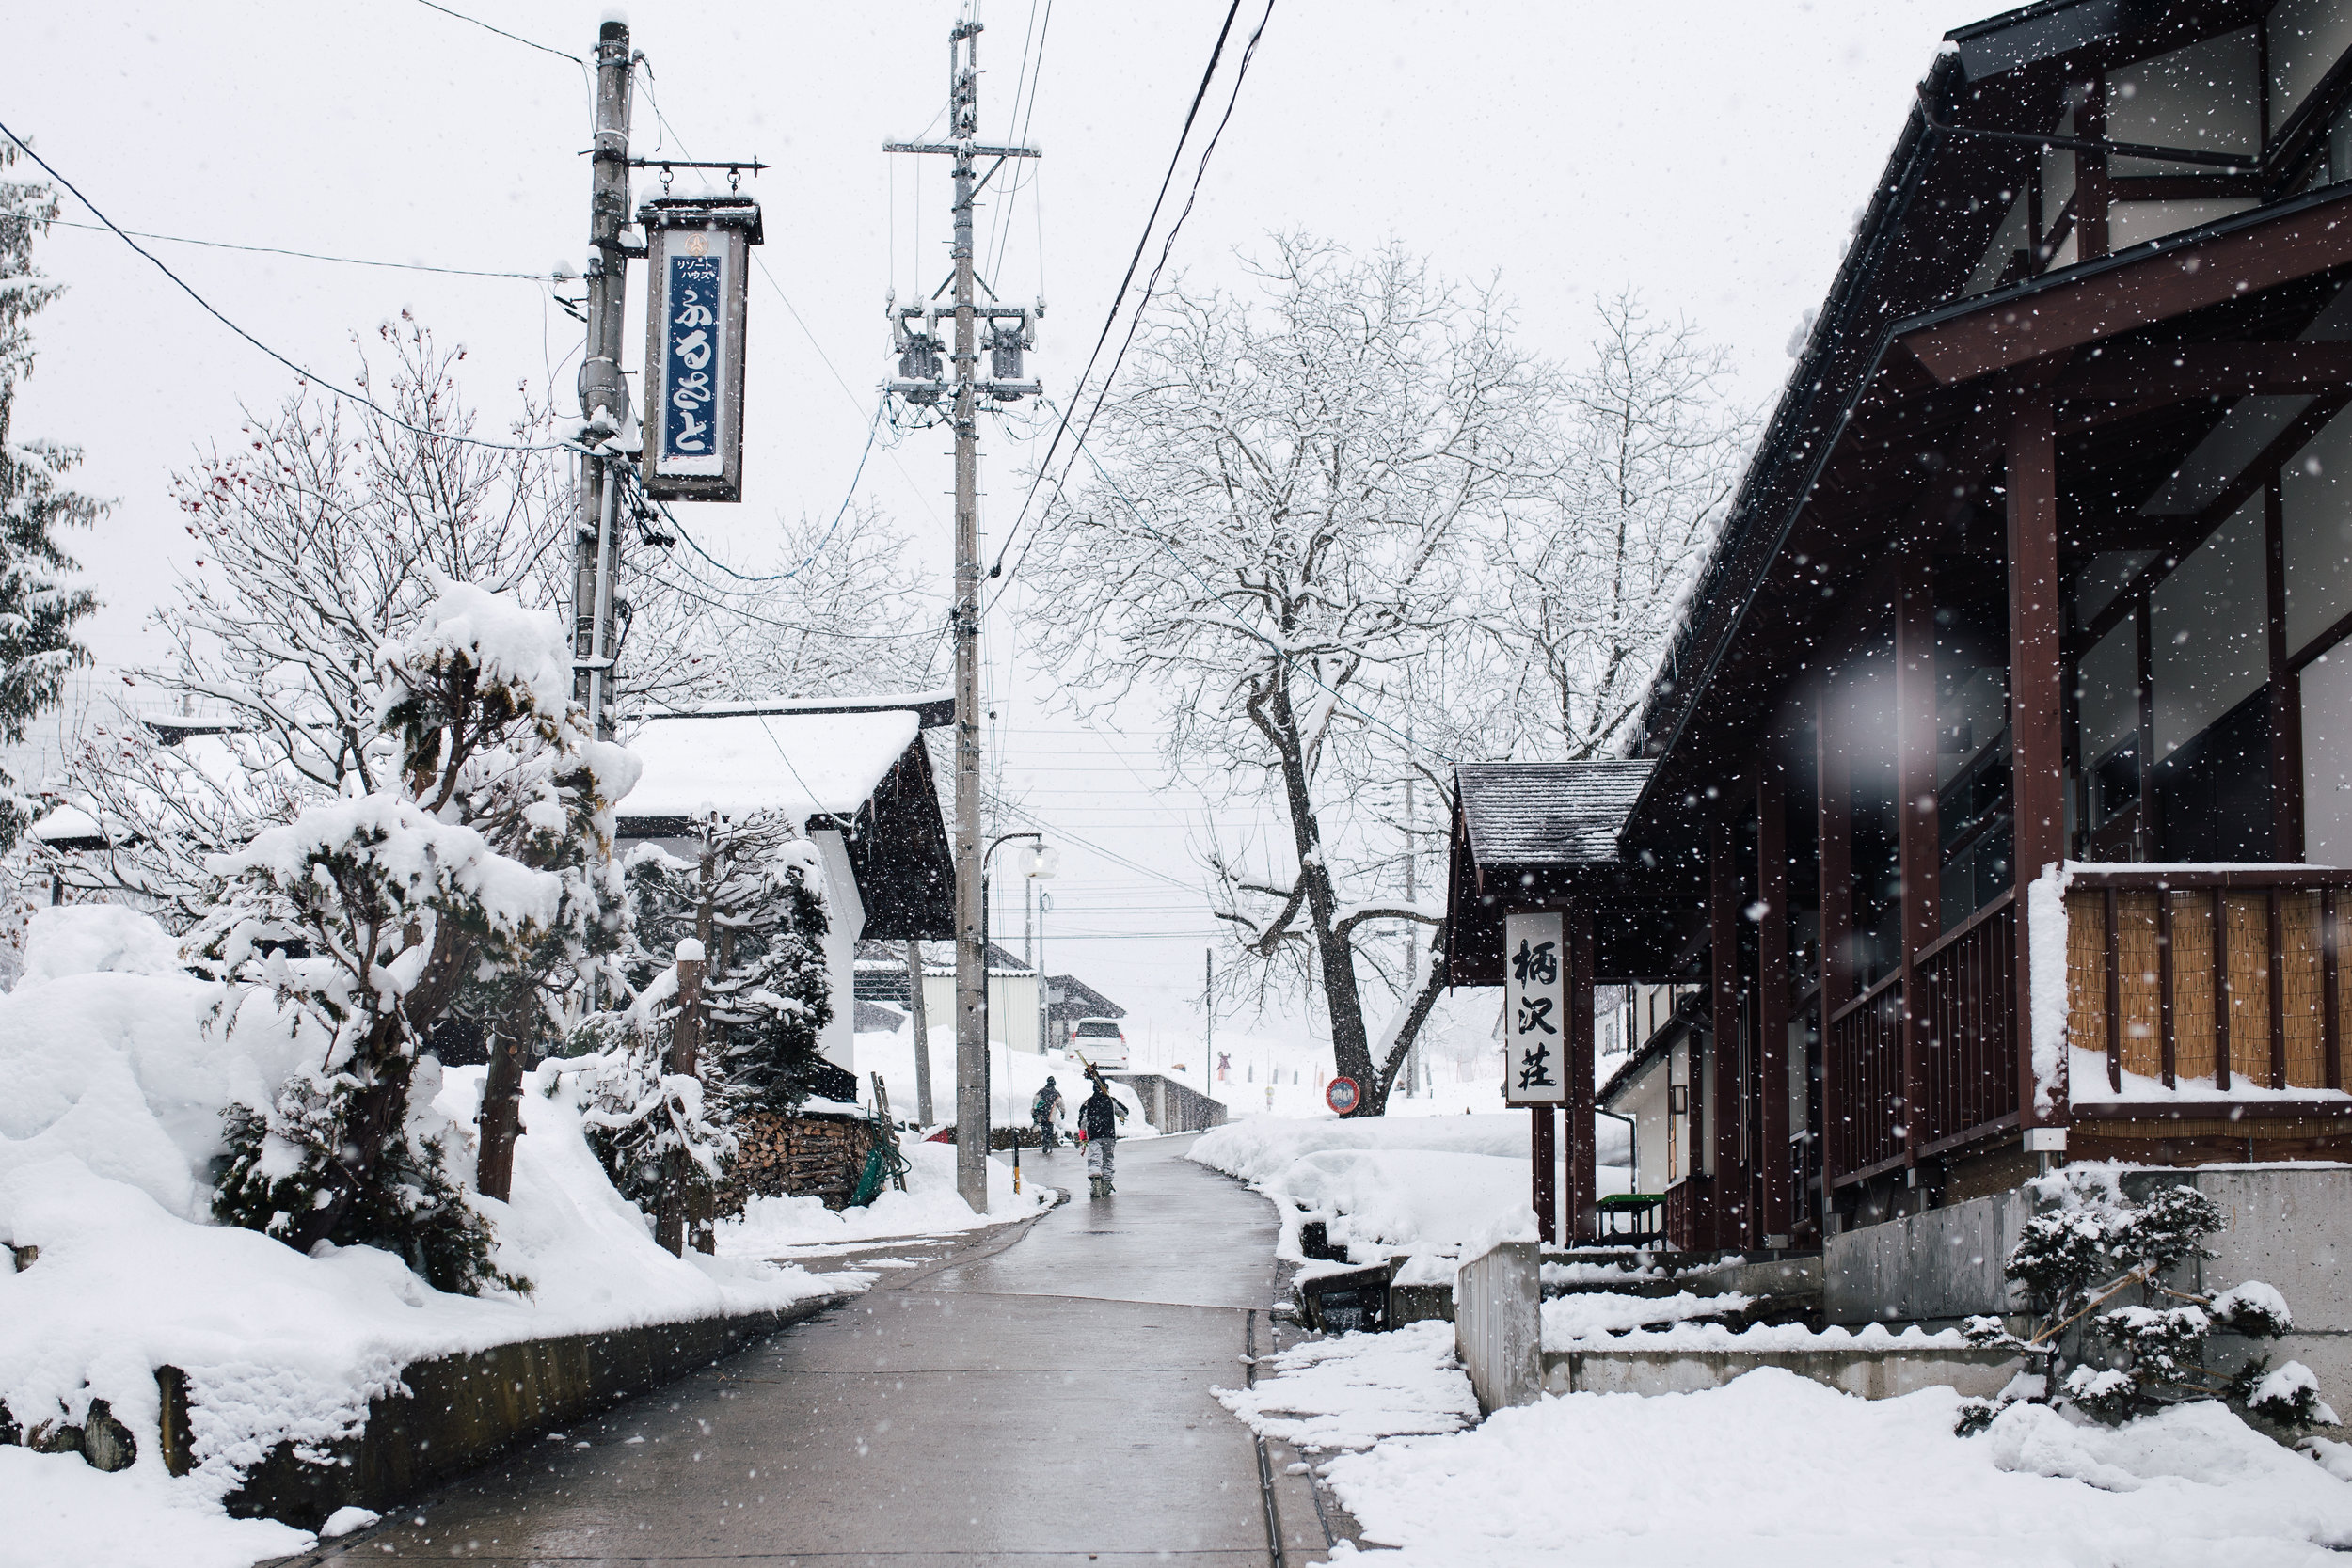 Meanwhile, Annabelle is enjoying the snow in Nozawa Onsen, Japan